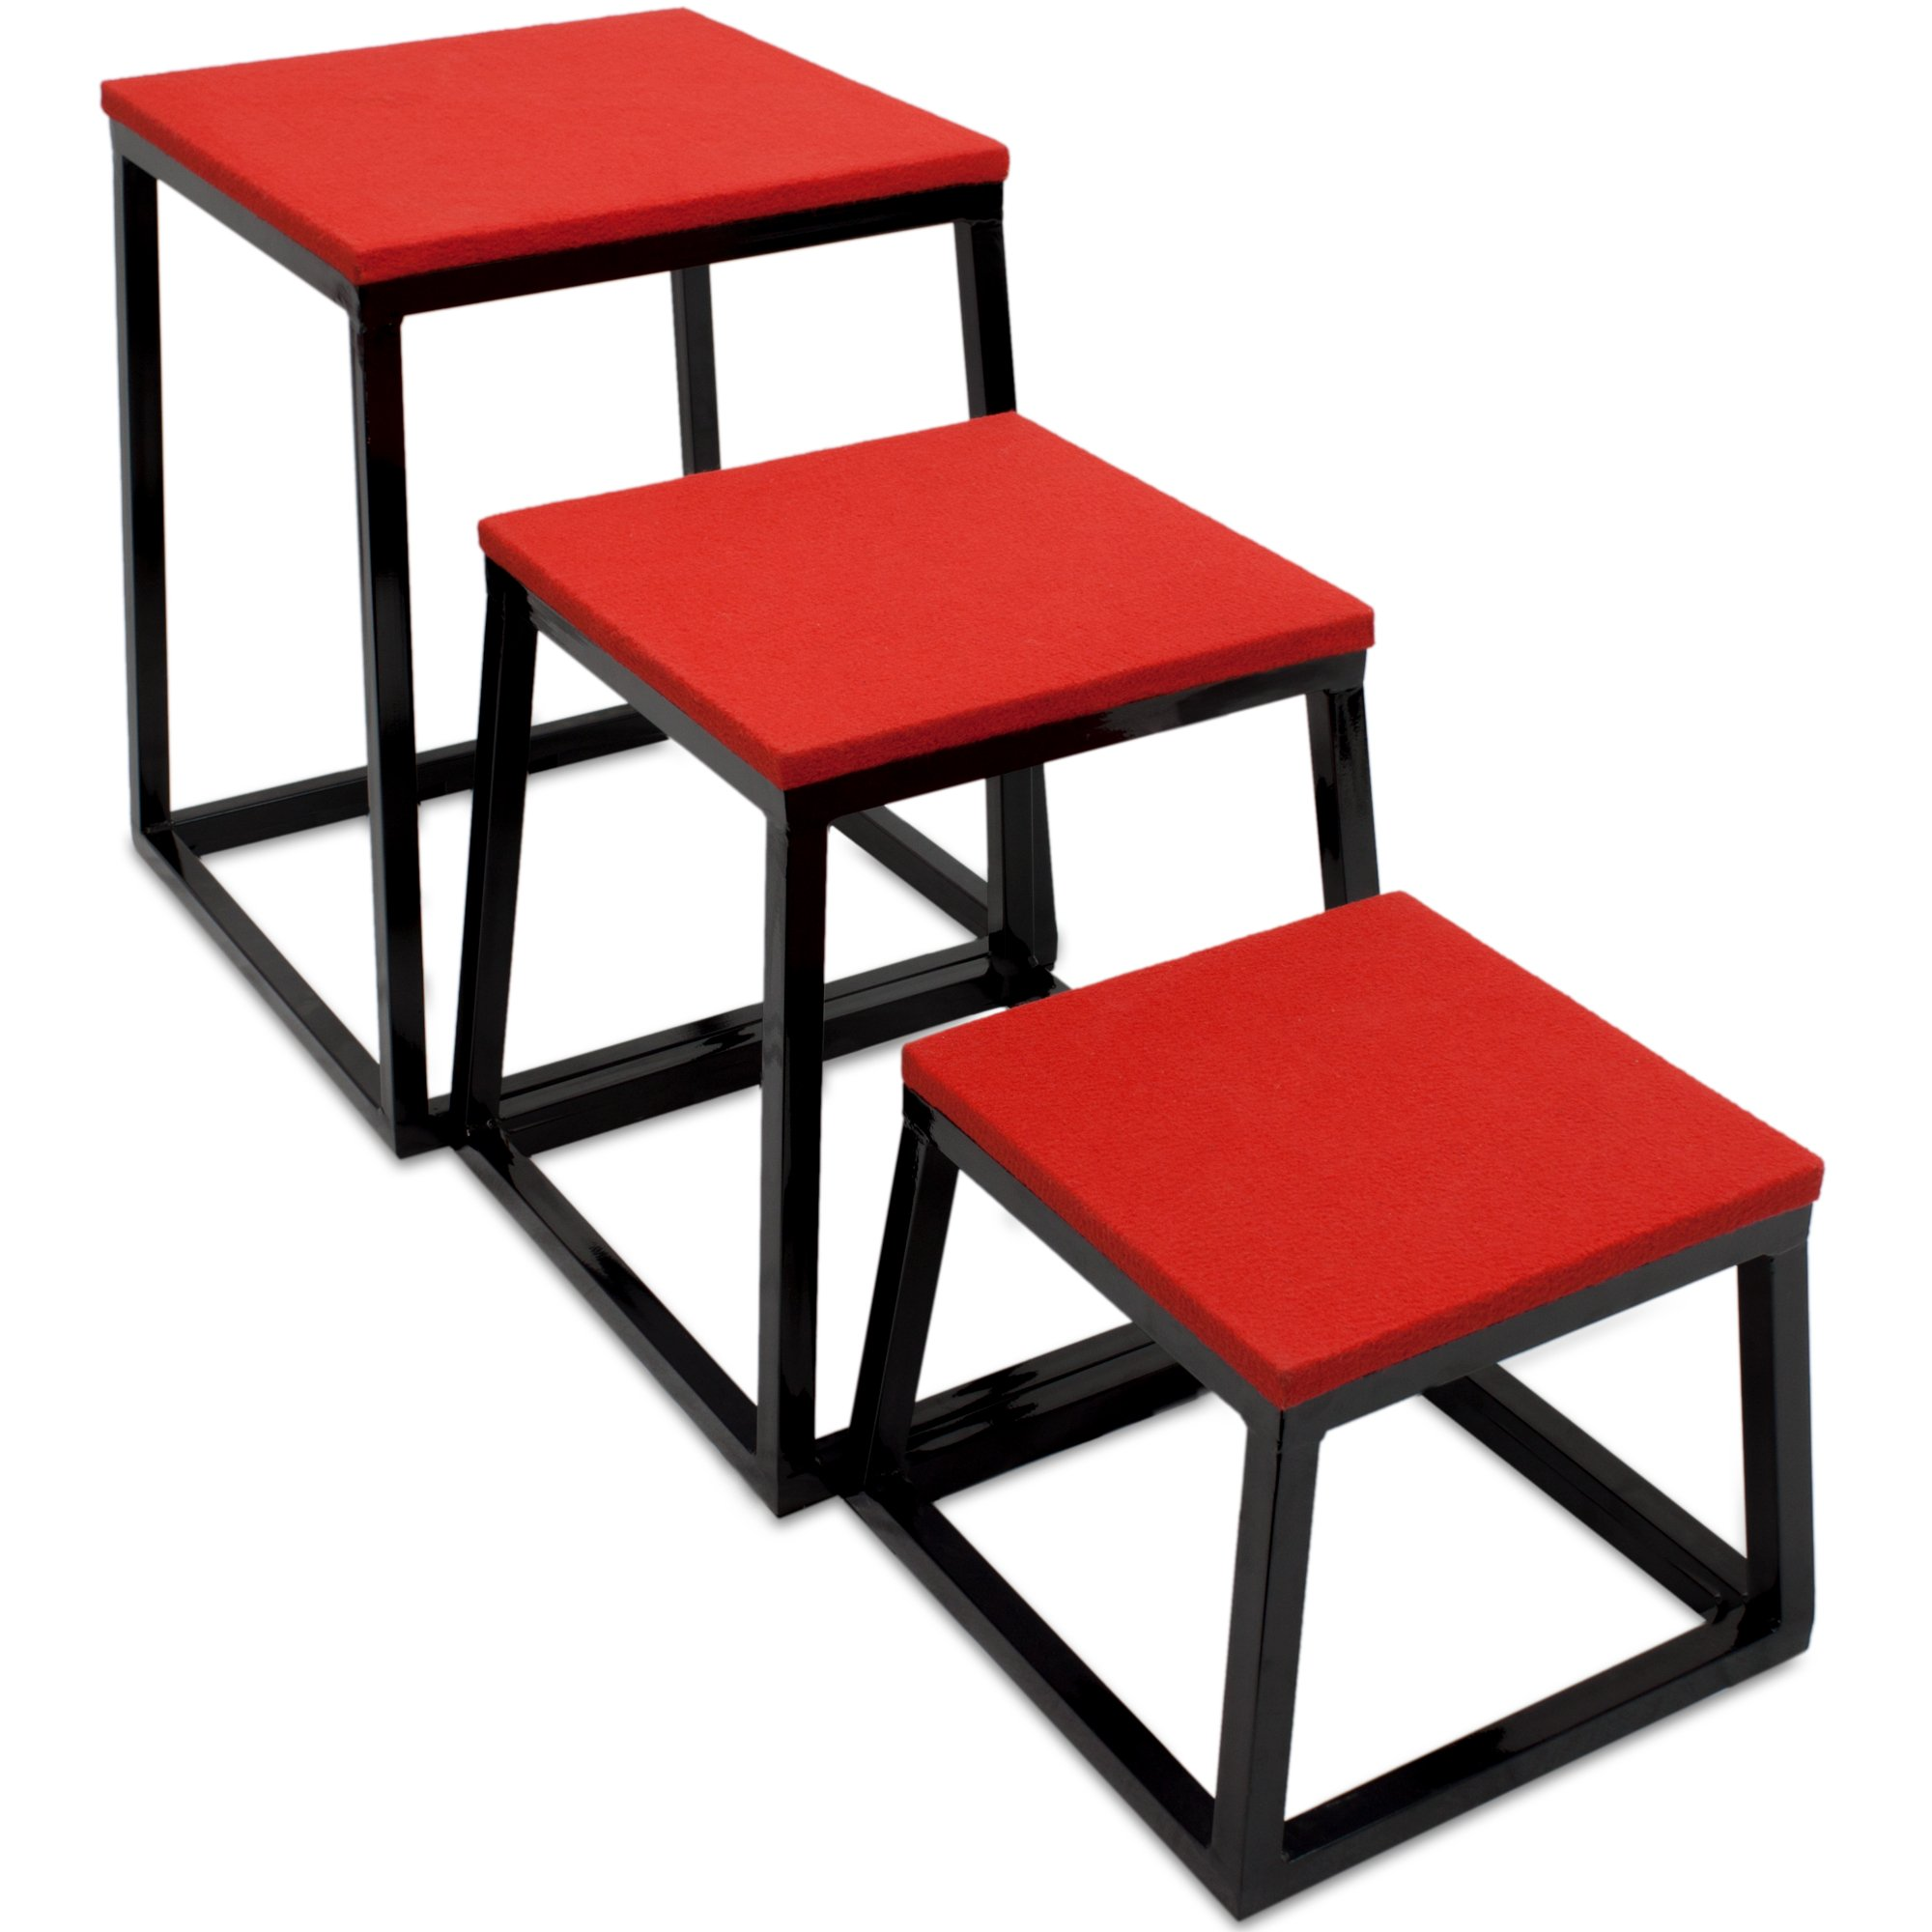 Set of 3 Plyometric Jump Boxes – Step Platform, Fitness Training & Conditioning Equipment for Increasing Vertical, Speed, & Stamina (12''/18''/24'') by Crown Sporting Goods by Crown Sporting Goods (Image #5)